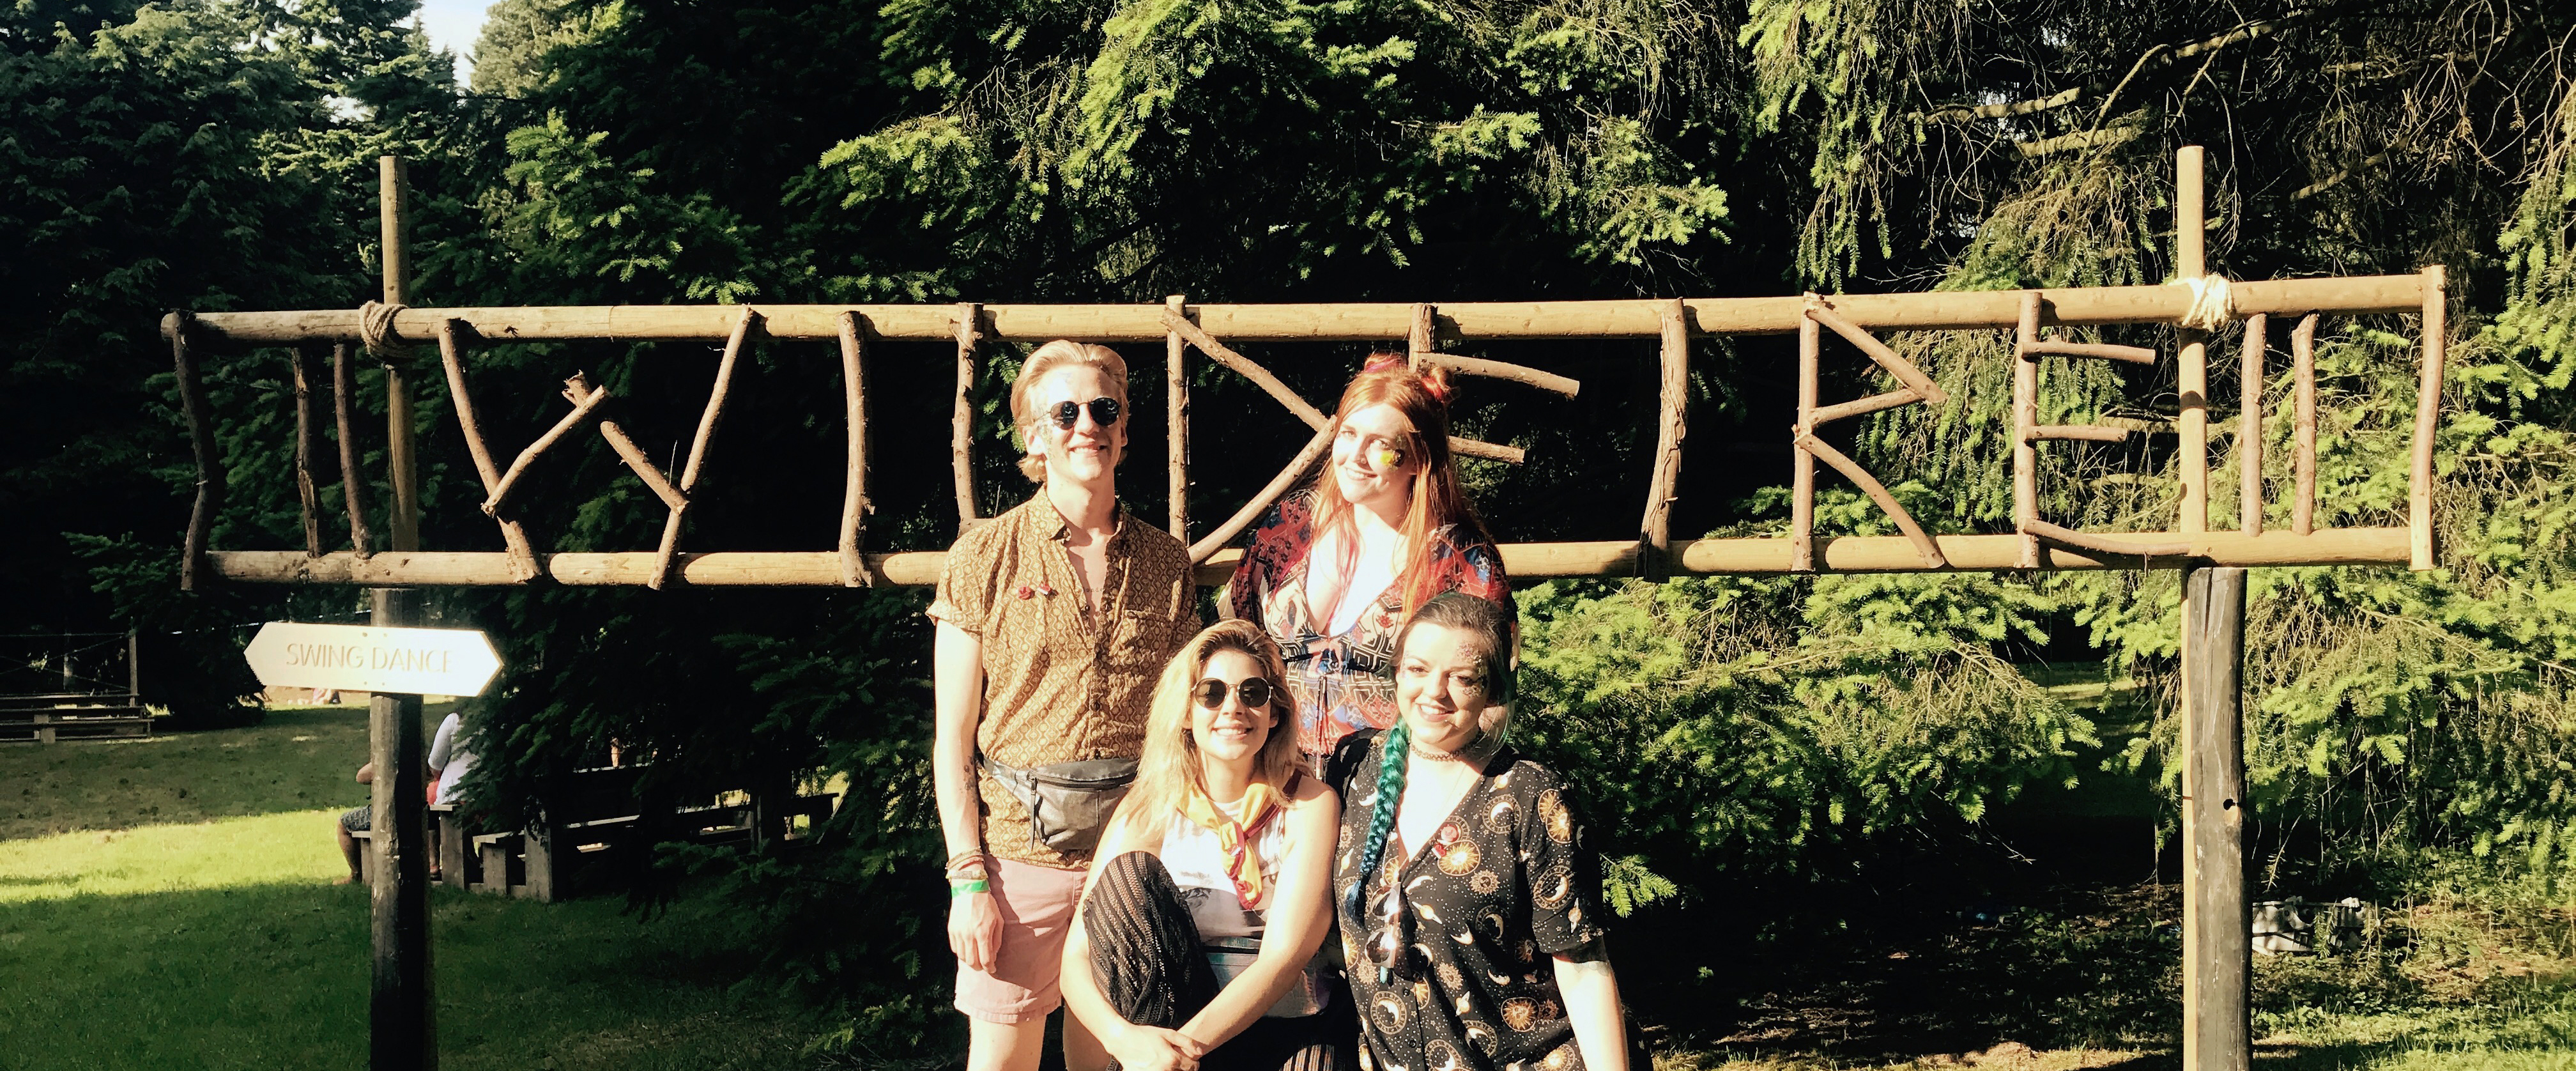 My friends and I in front of the wooden Wildfire sign